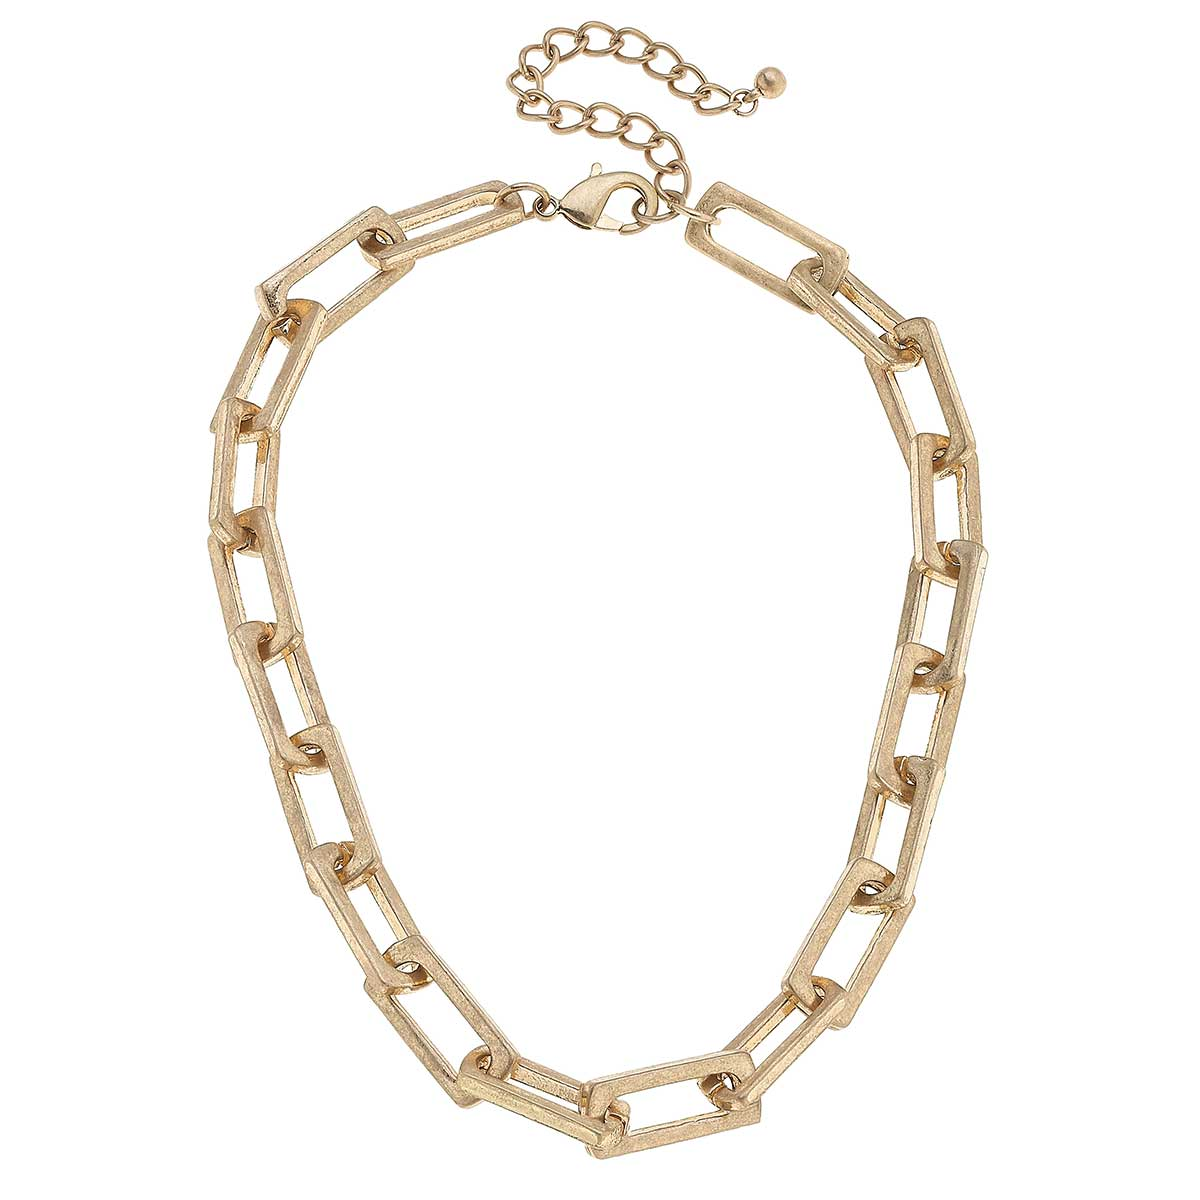 Lennox Chunky Rectangle Chain Link Necklace in Worn Gold